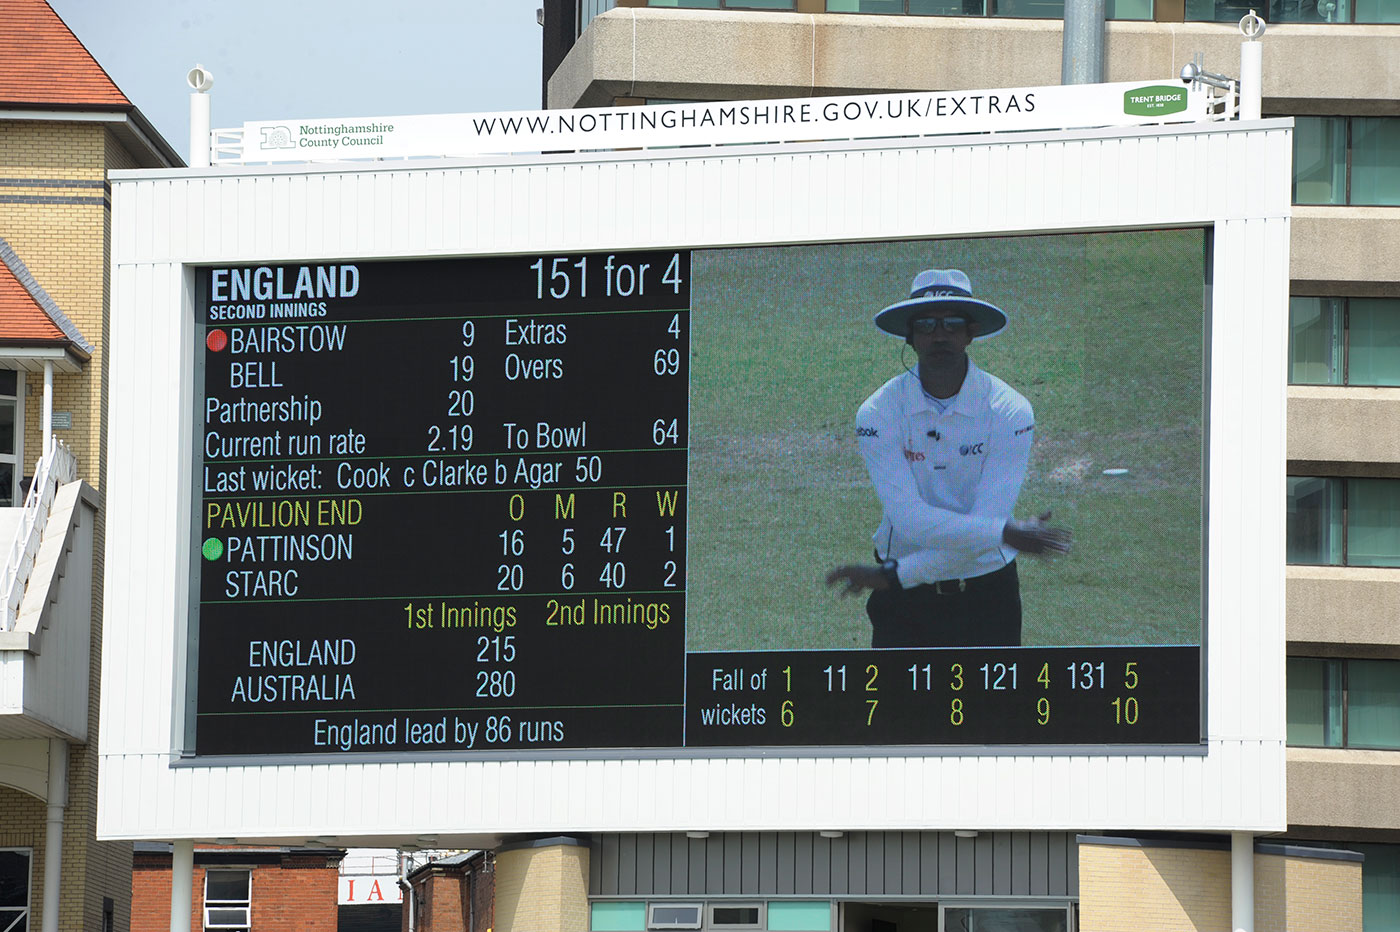 The scoreboard displays the umpire signalling a decision being upheld after review